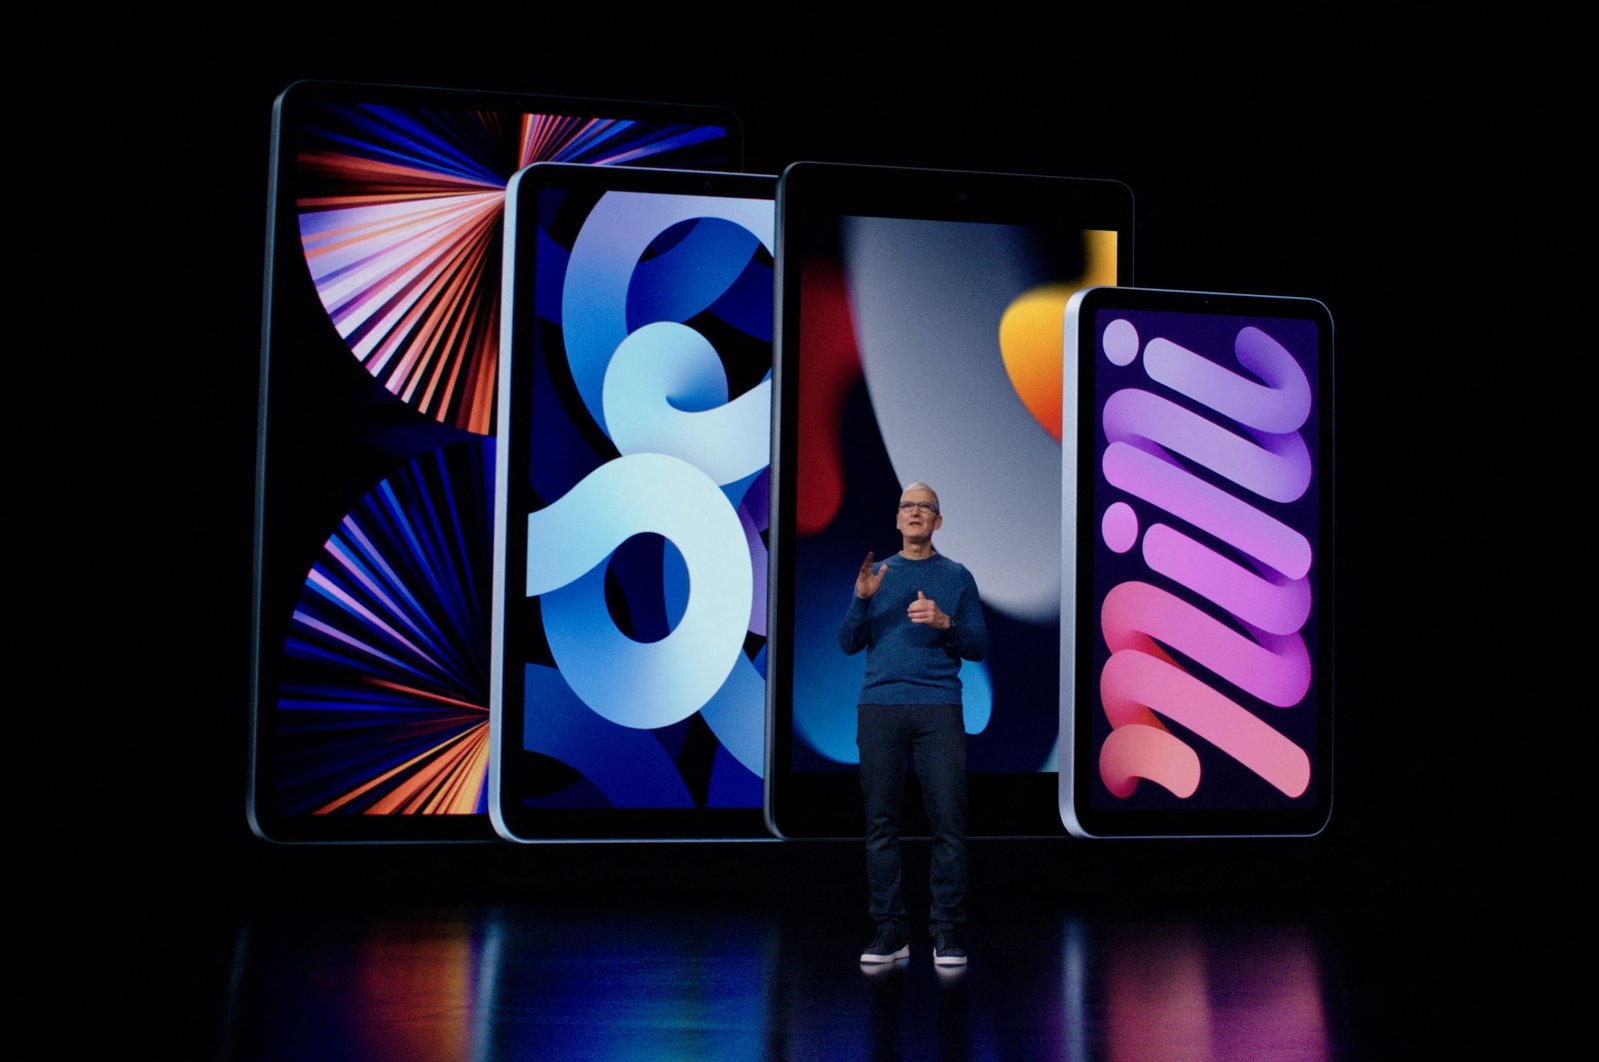 This handout image obtained courtesy of Apple Inc. shows Apple CEO Tim Cook introduces the latest iPad and iPad mini to the iPad lineup during a special event at Apple Park, as seen in this still image from the keynote video,  Sept. 14, 2021. (Photo by Handout / Apple Inc. / AFP)